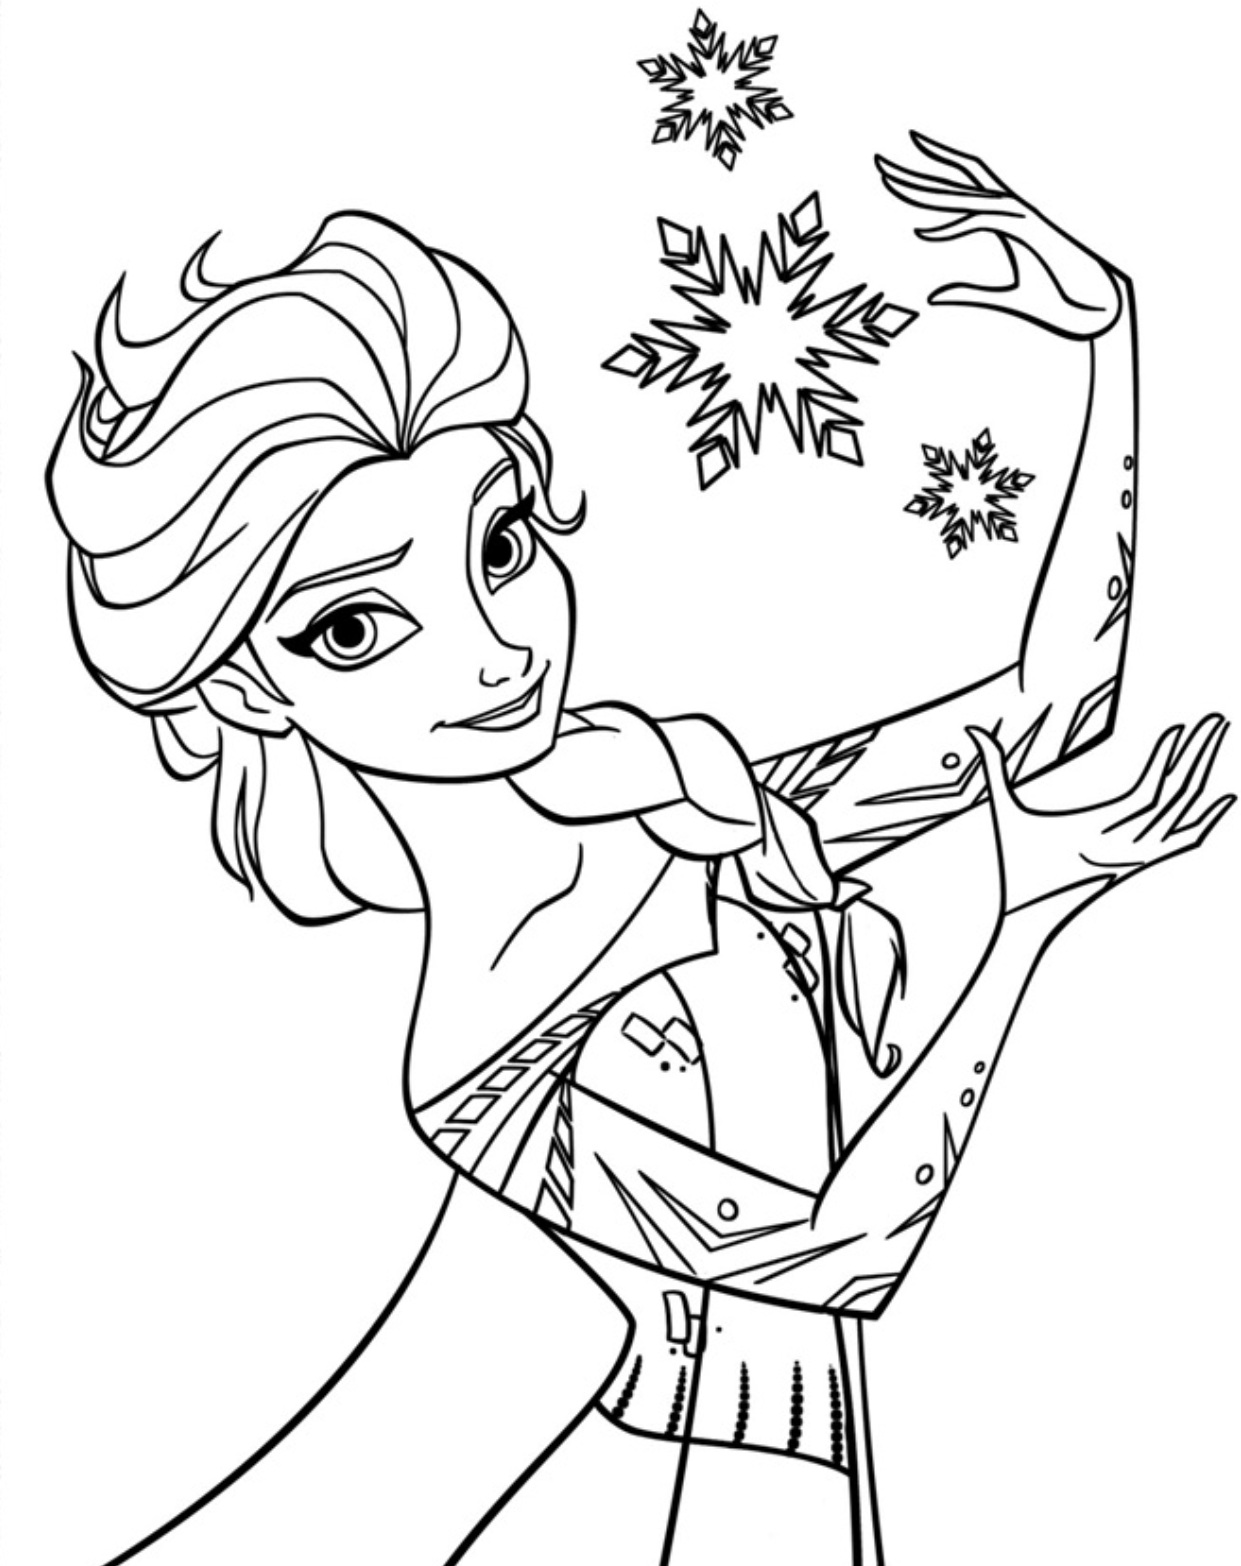 coloring pics easy coloring pages to download and print for free coloring pics